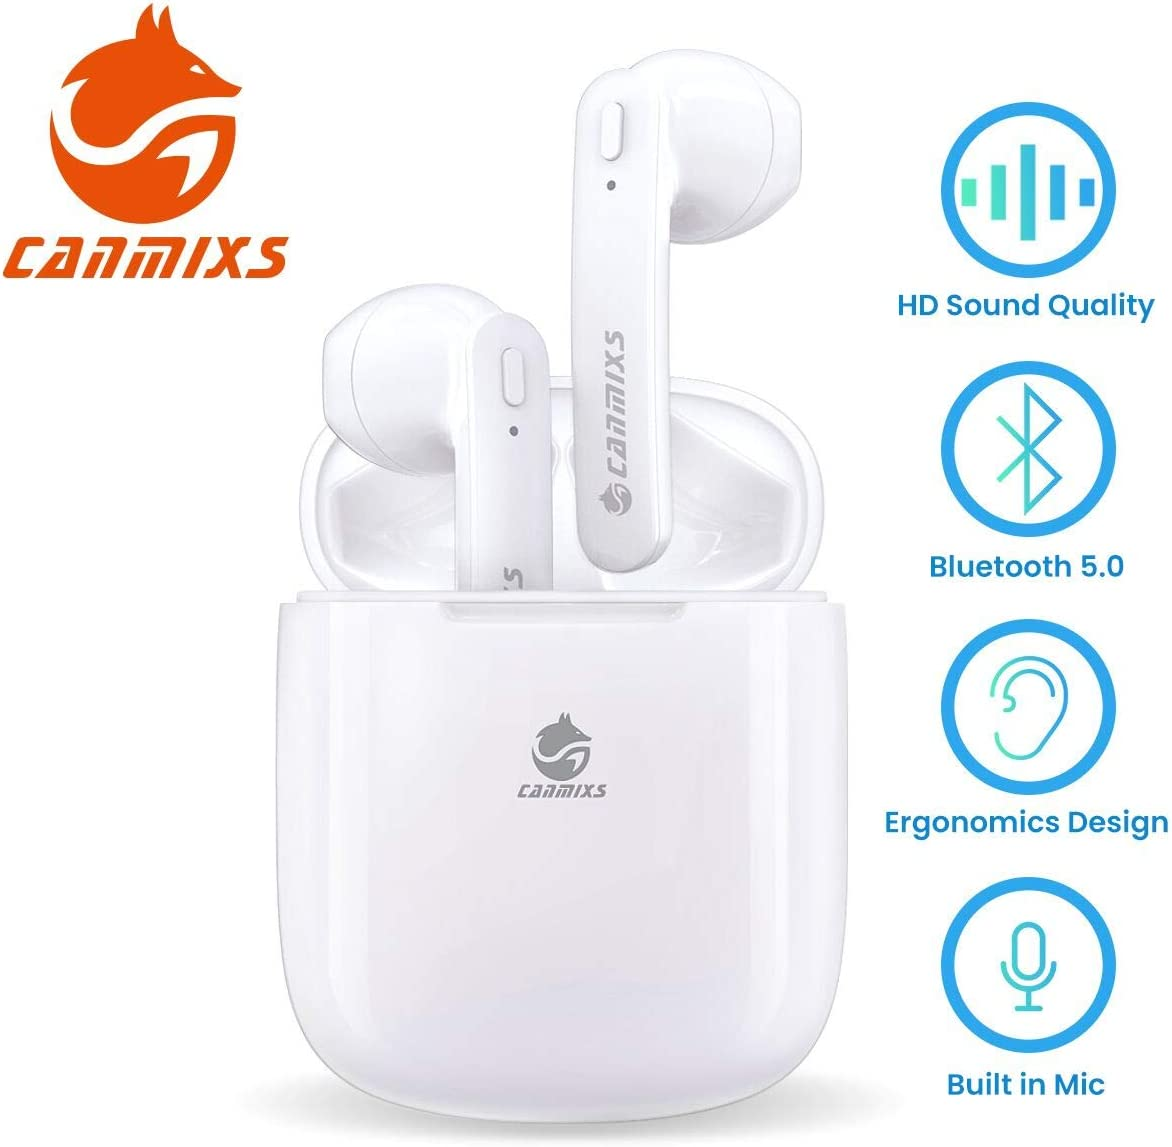 Canmixs True Wireless Earbuds,Gym Blue-Tooth Earphones for Running B15 TWS Wireless Earbuds Micro Earpiece with Charging Case Cordless in-Ear Stereo Headphones for iPhone Android